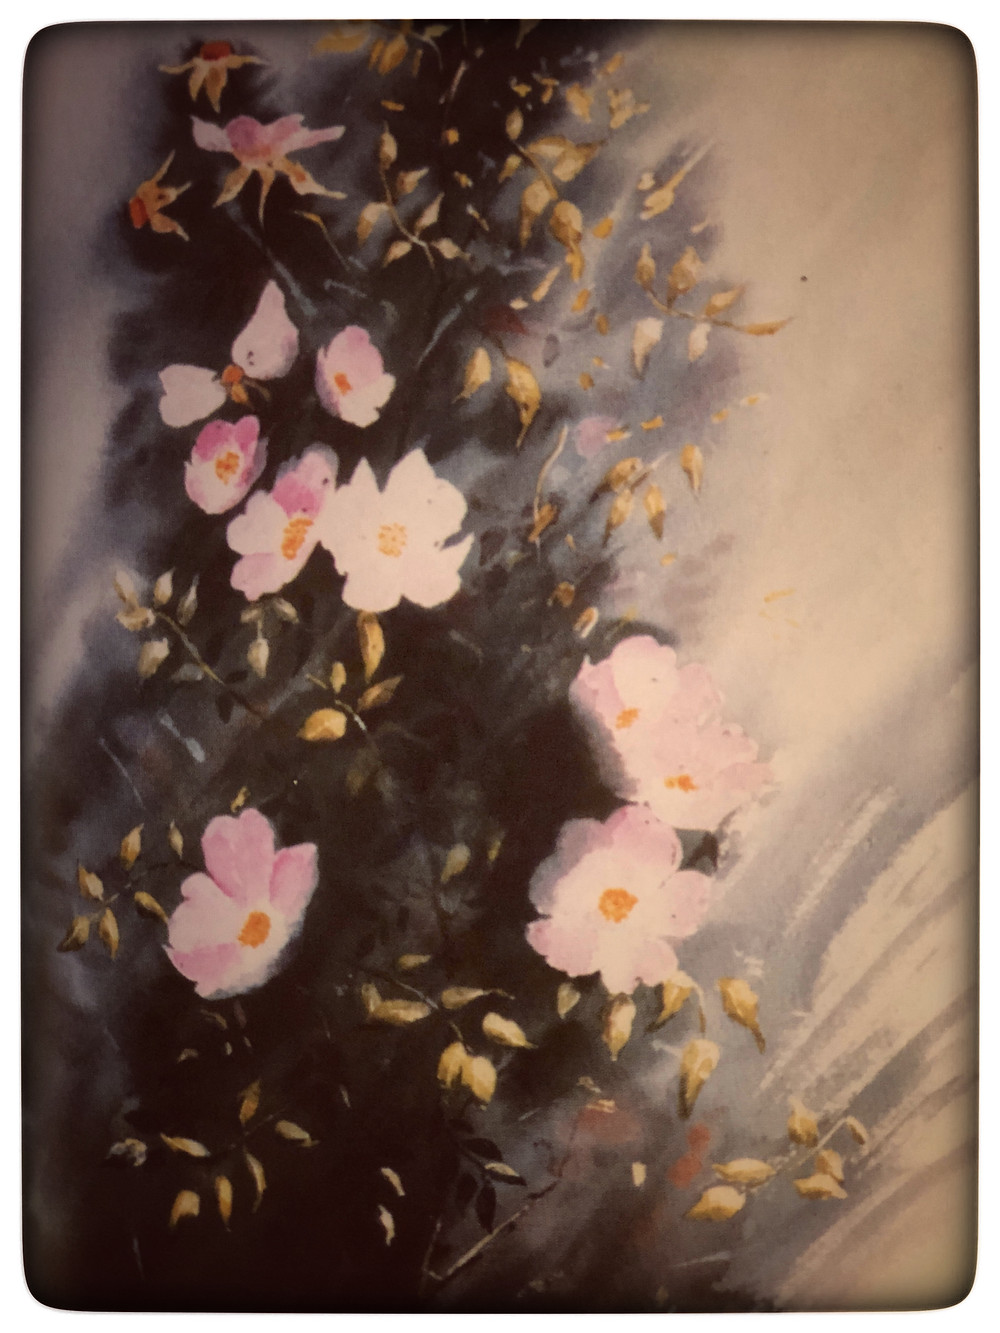 """Passage and Sketch from """"A Year in a Meadow"""", Pat Smith, 2002 (my grandmother's cousin)"""